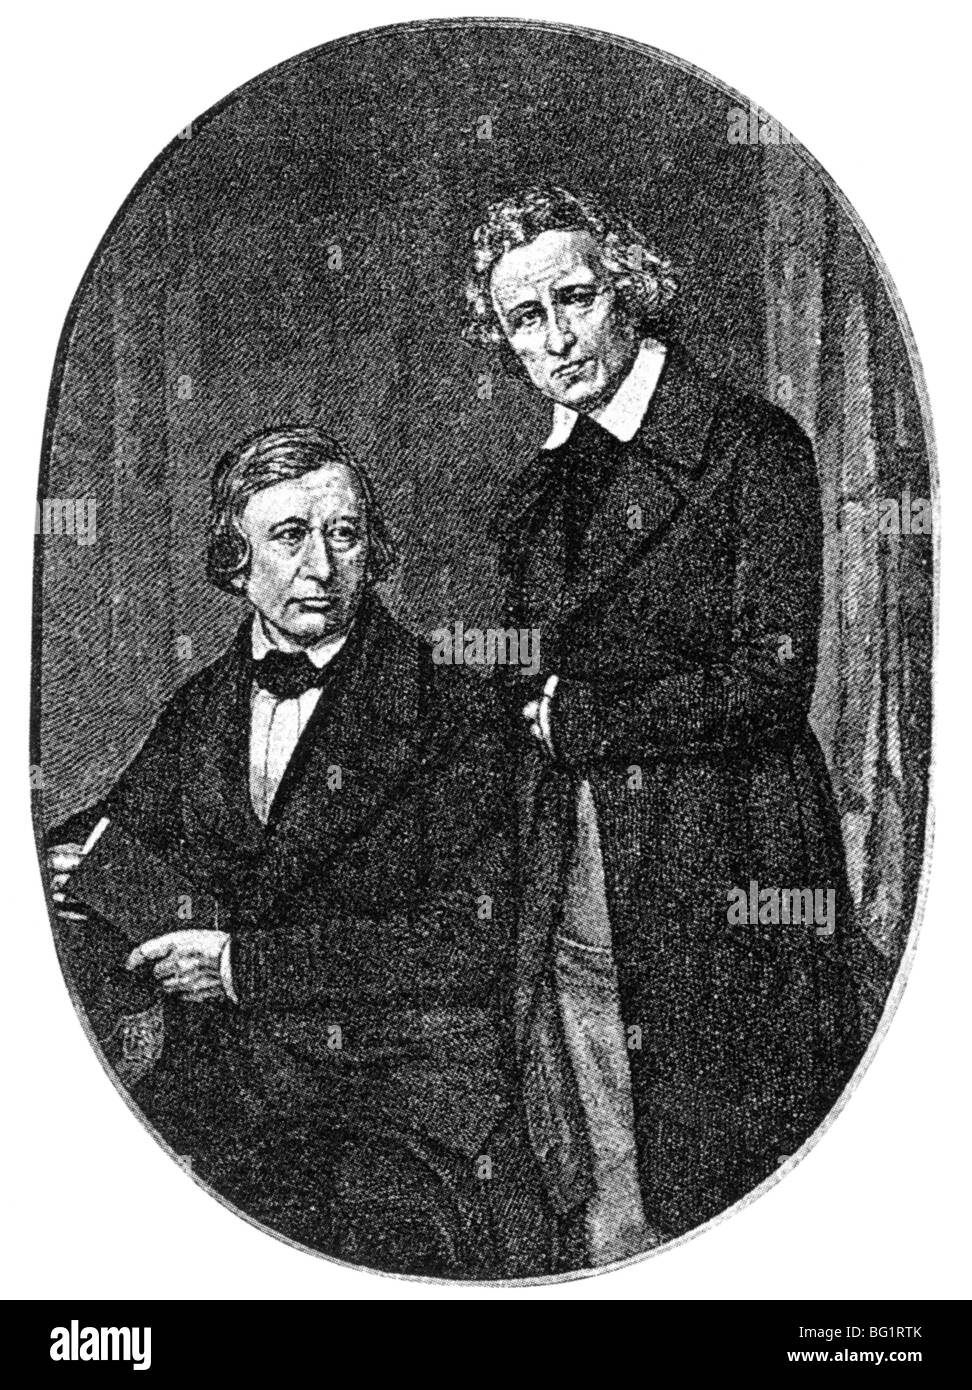 BROTHERS GRIMM  German academics who collected folk tales and researched the German language. Wilhelm Grimm at left - Stock Image